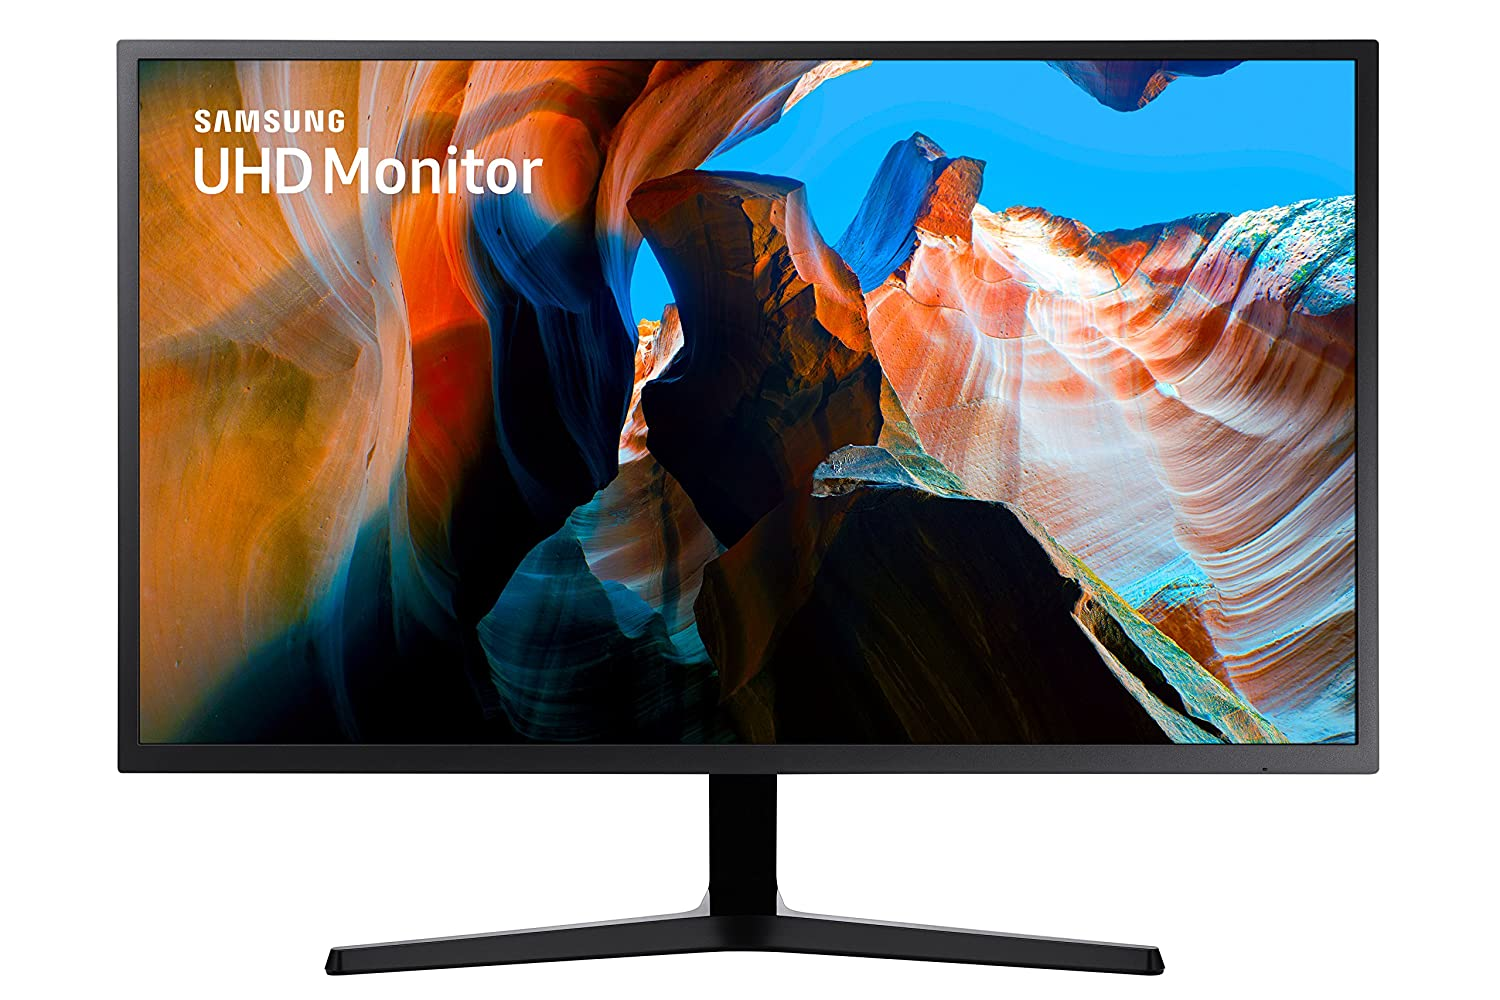 Samsung 32-inch (80.01cm) Flat UHD Monitor with 178 Degree Viewing Angle - LU32J590UQWXXL